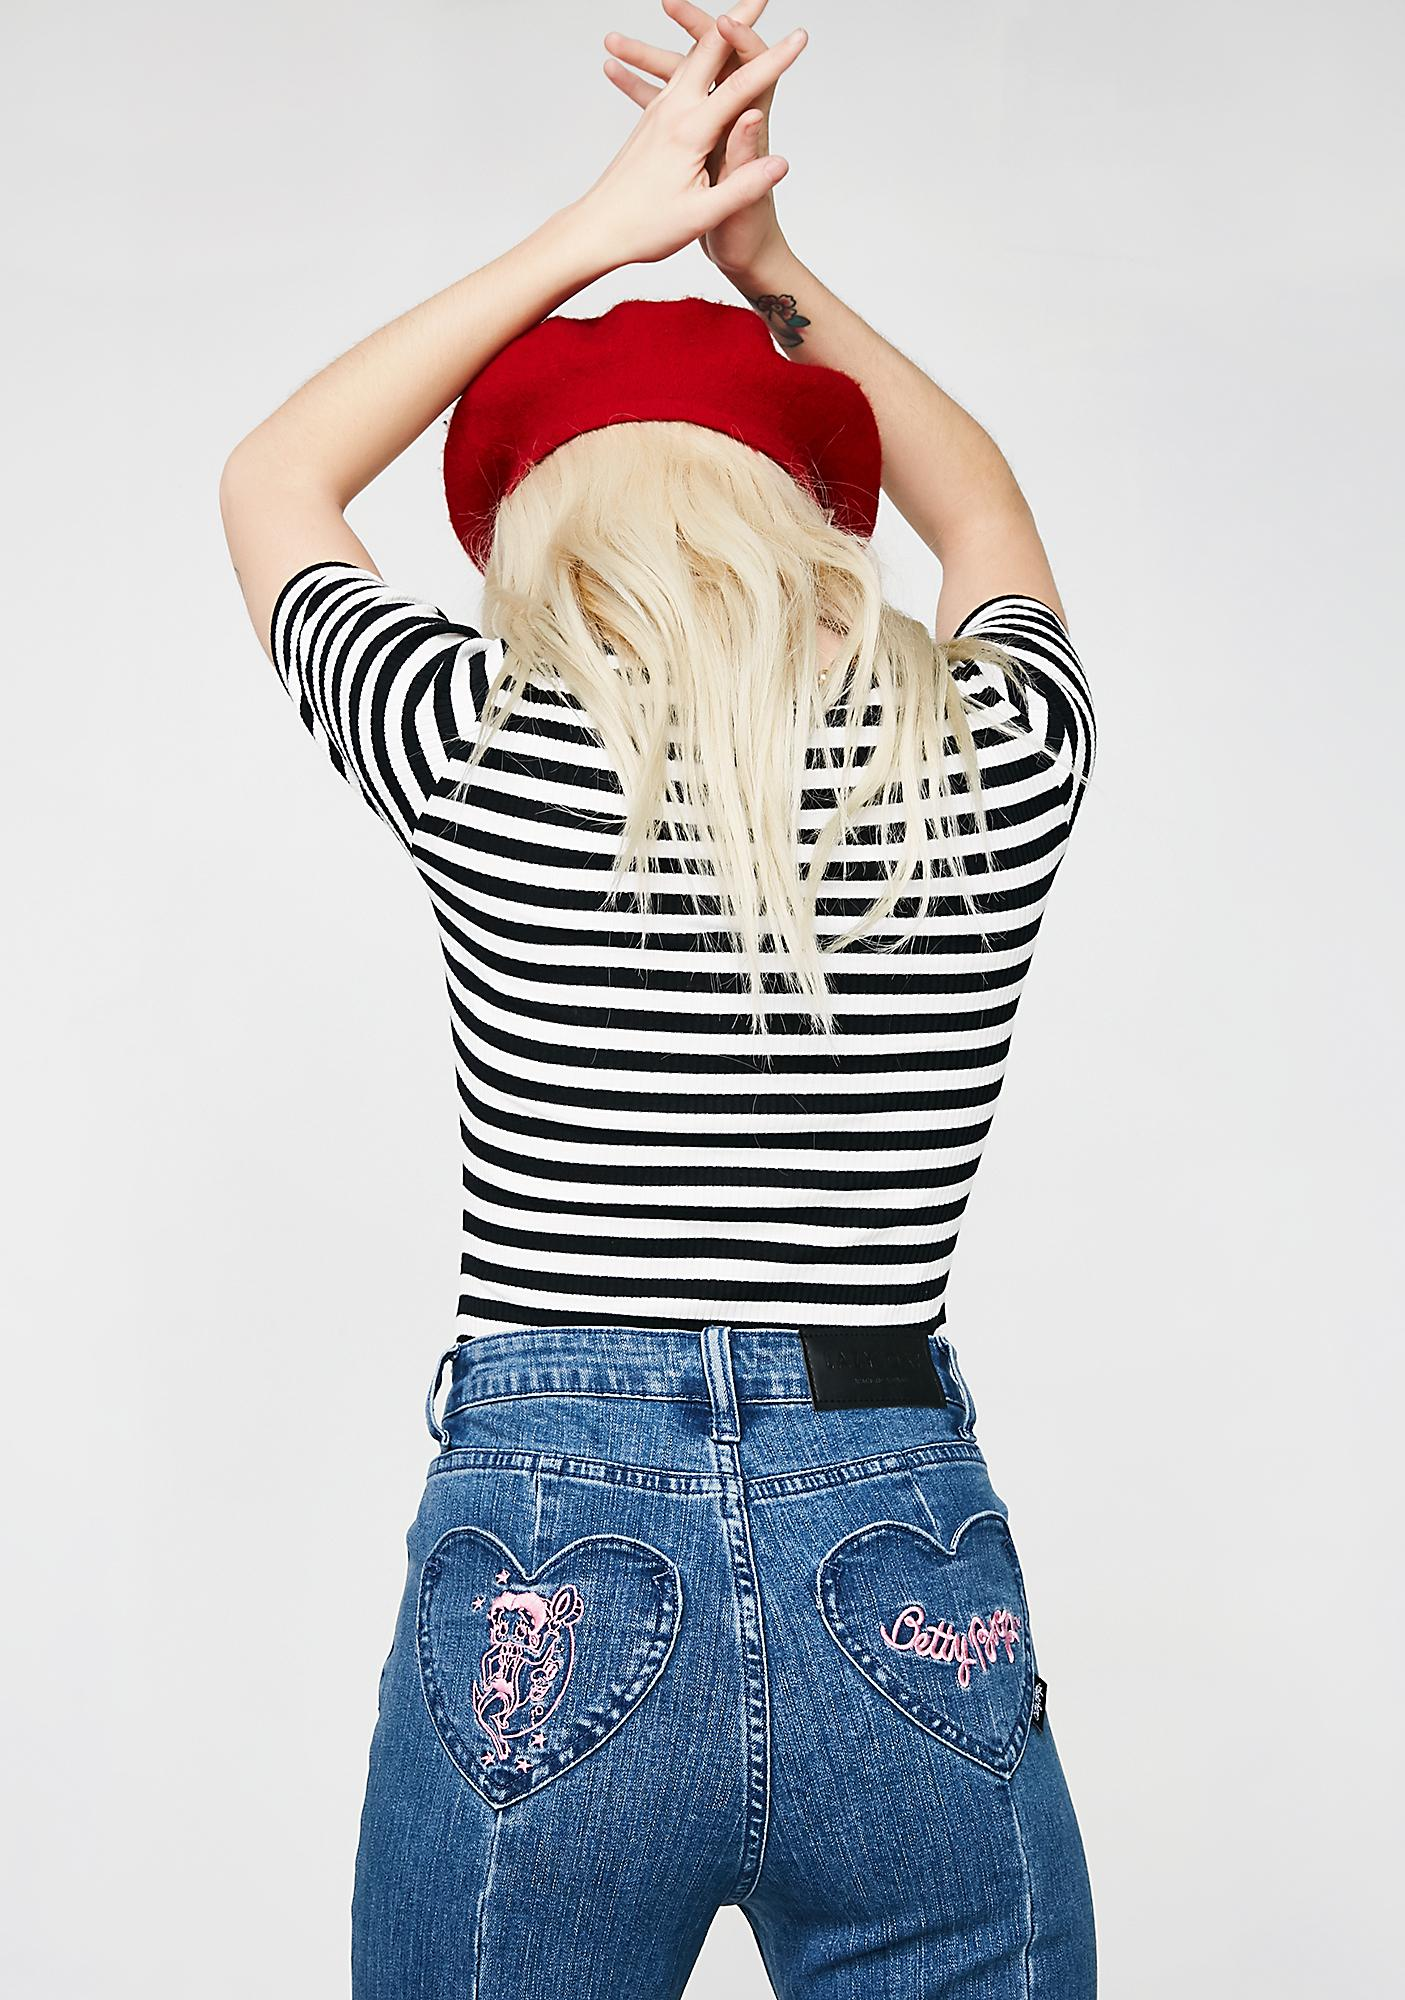 Lazy Oaf Betty Boop Pinup Jeans